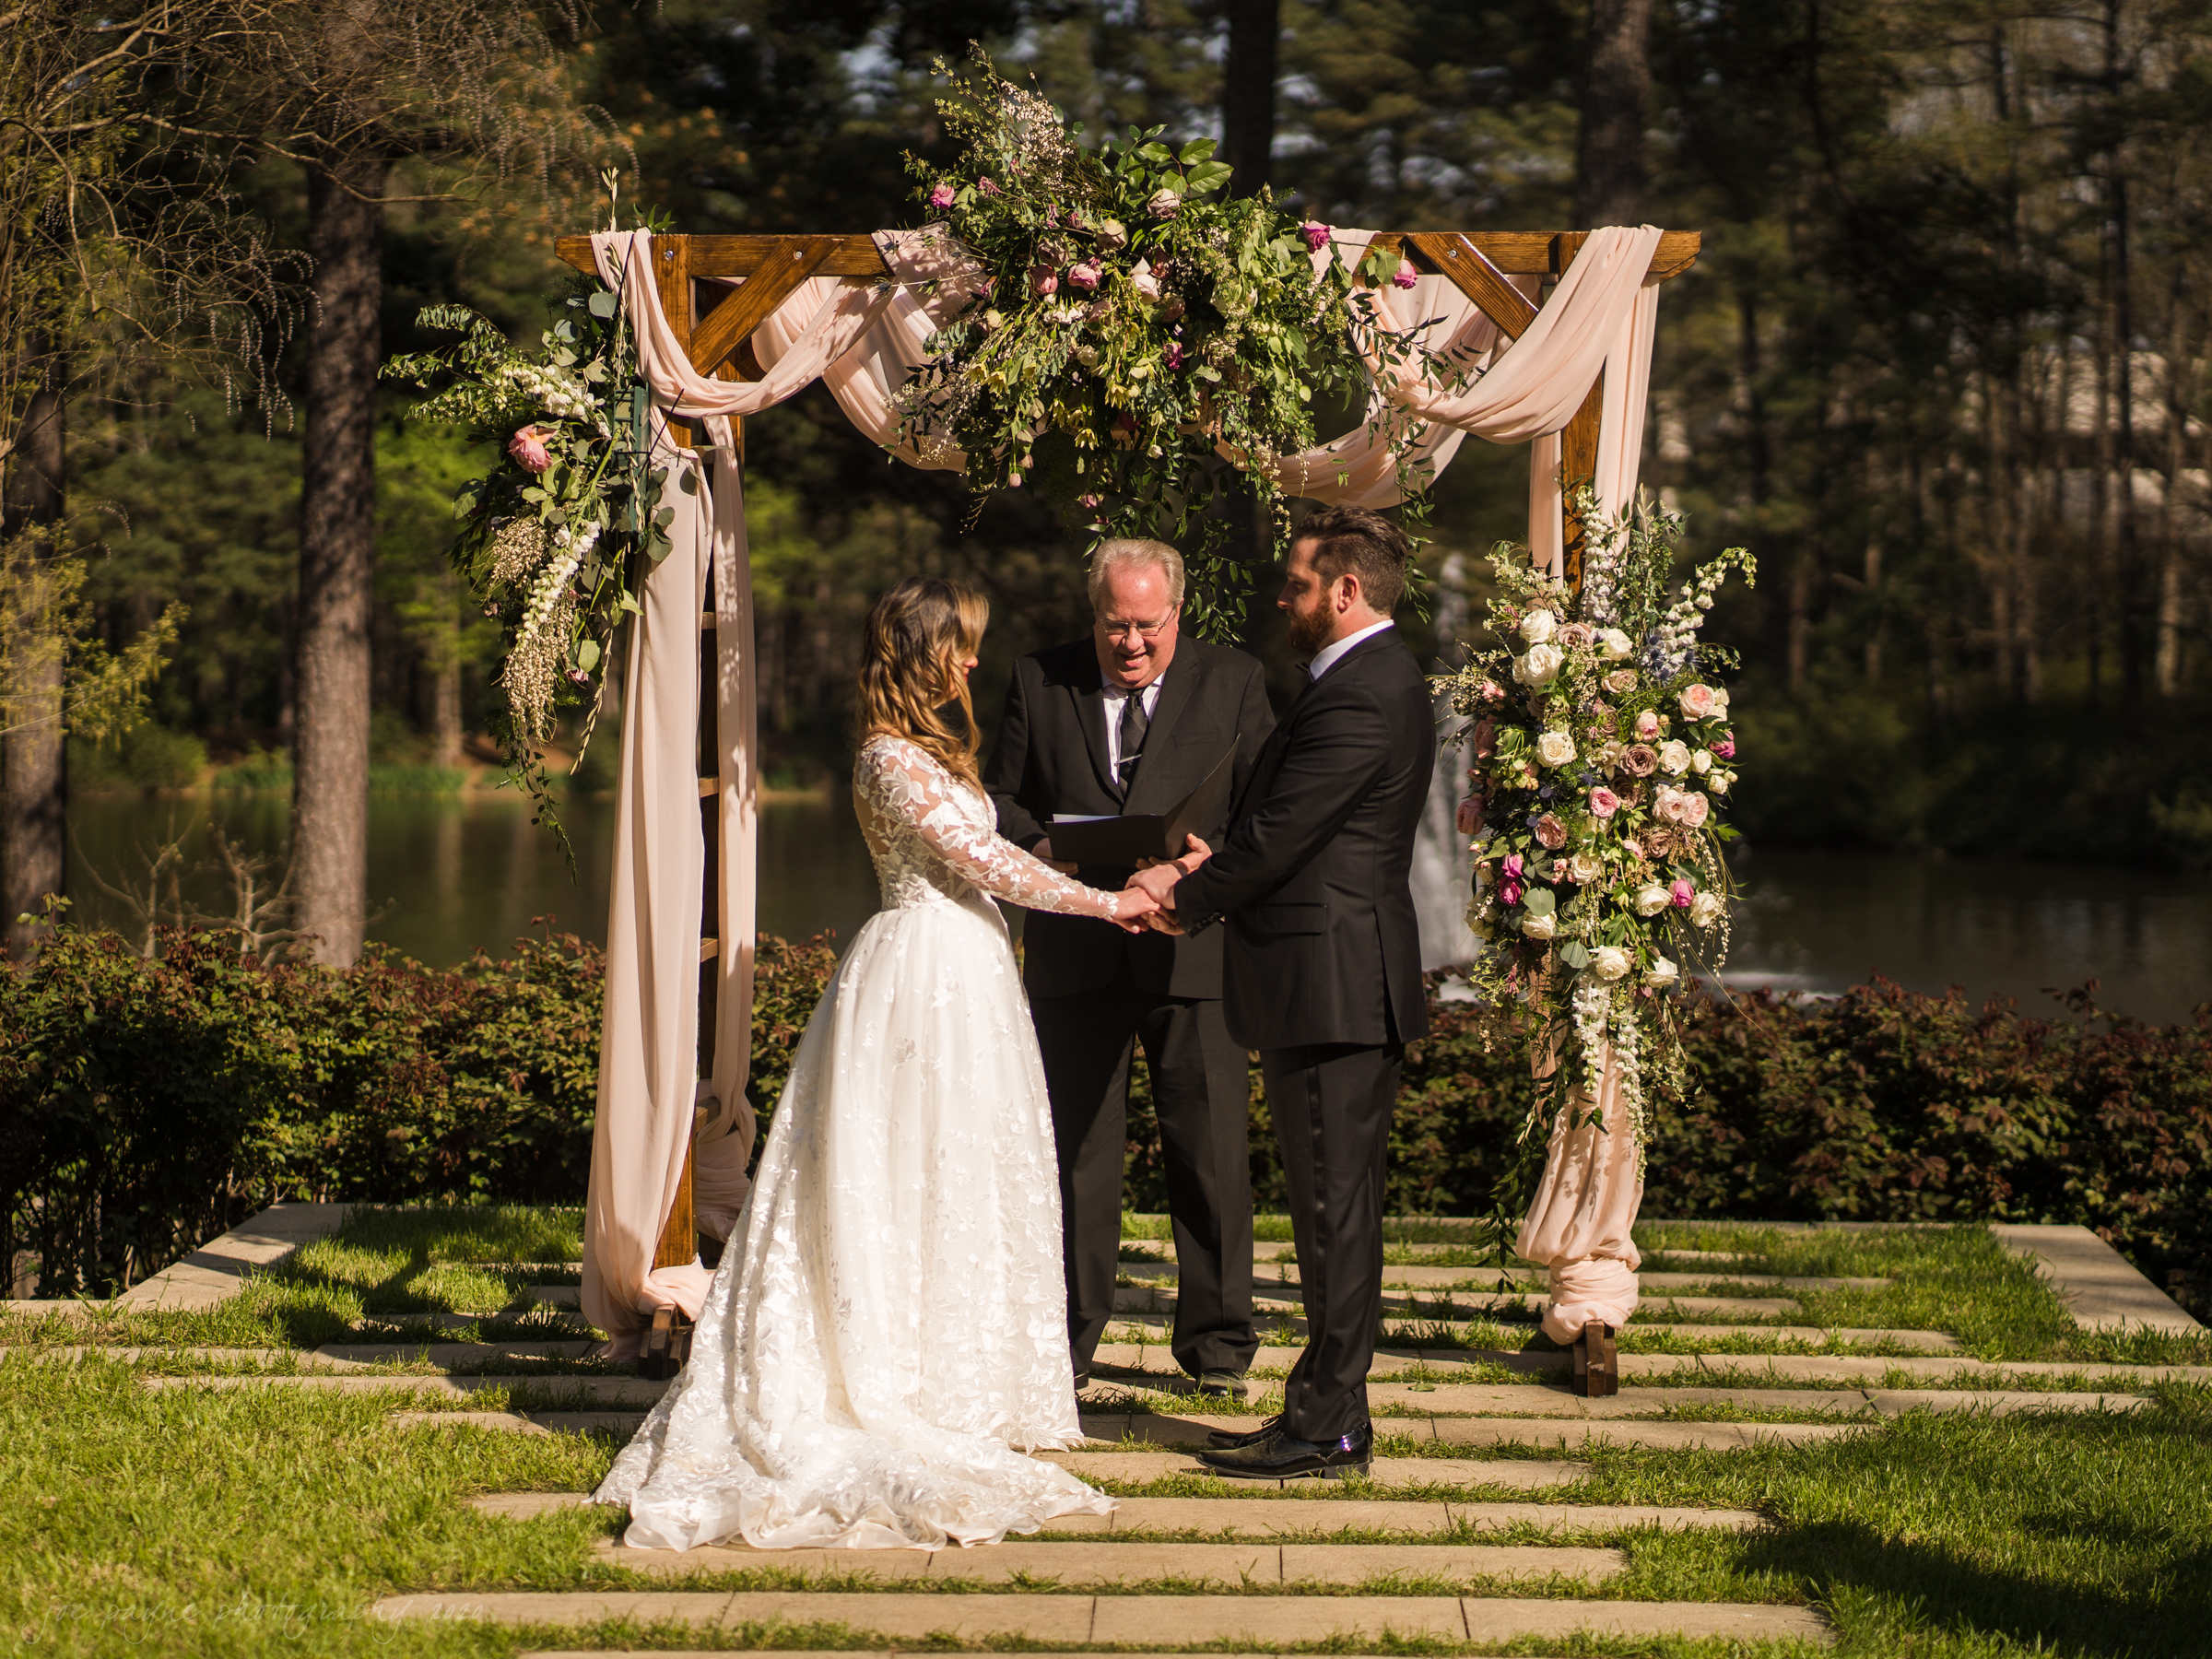 umstead hotel park wedding photography brittany harrison 17